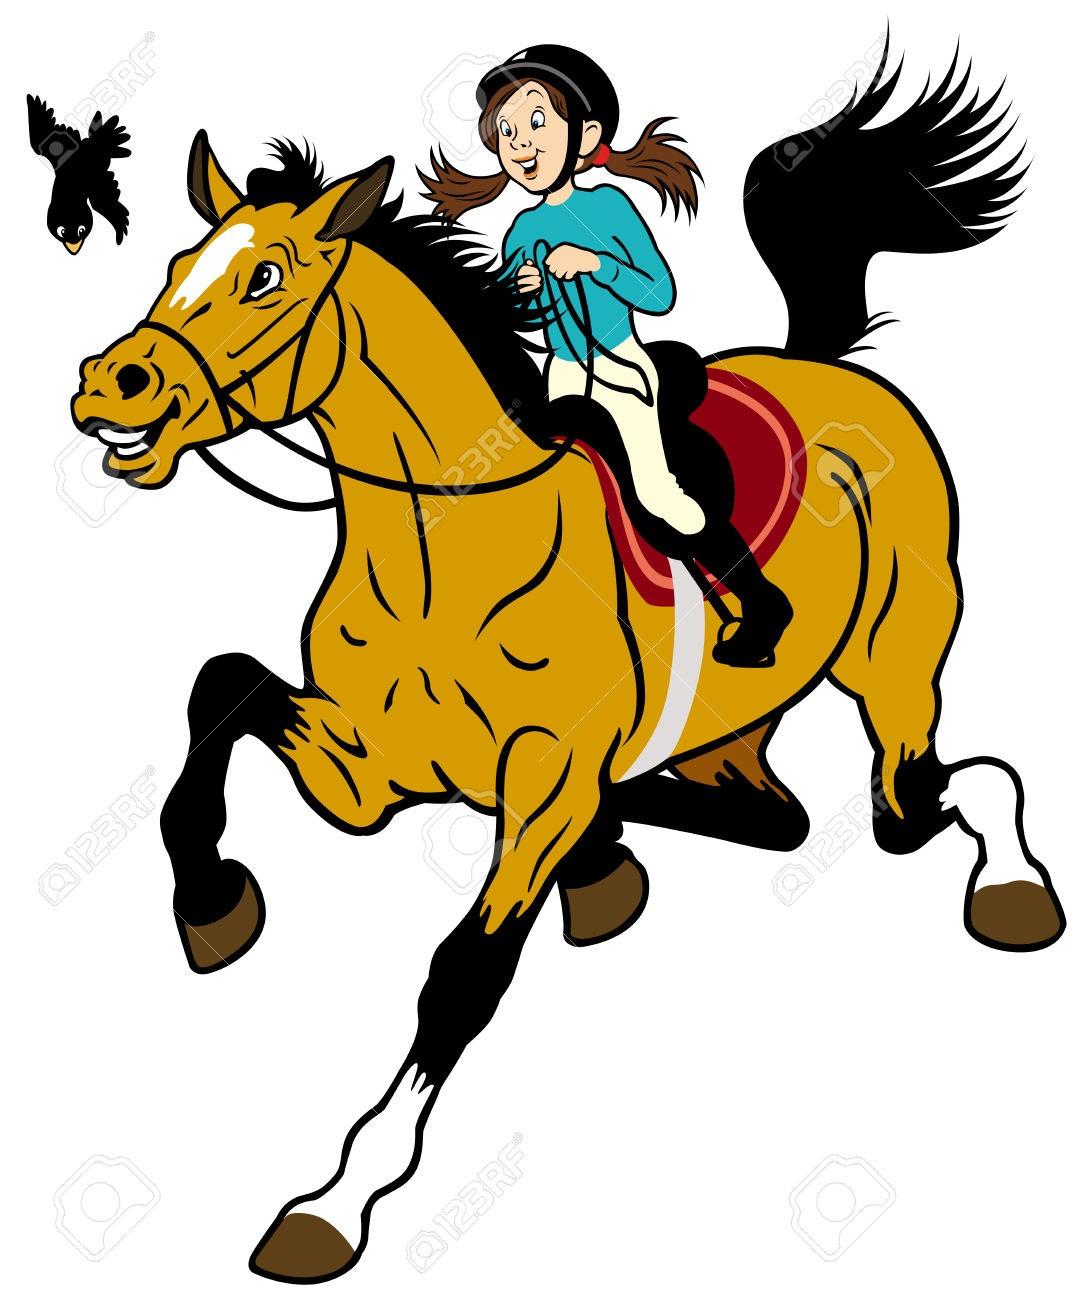 1085x1300 Image Of Horse Riding Clipart 11714 Back Clip Art Incredible